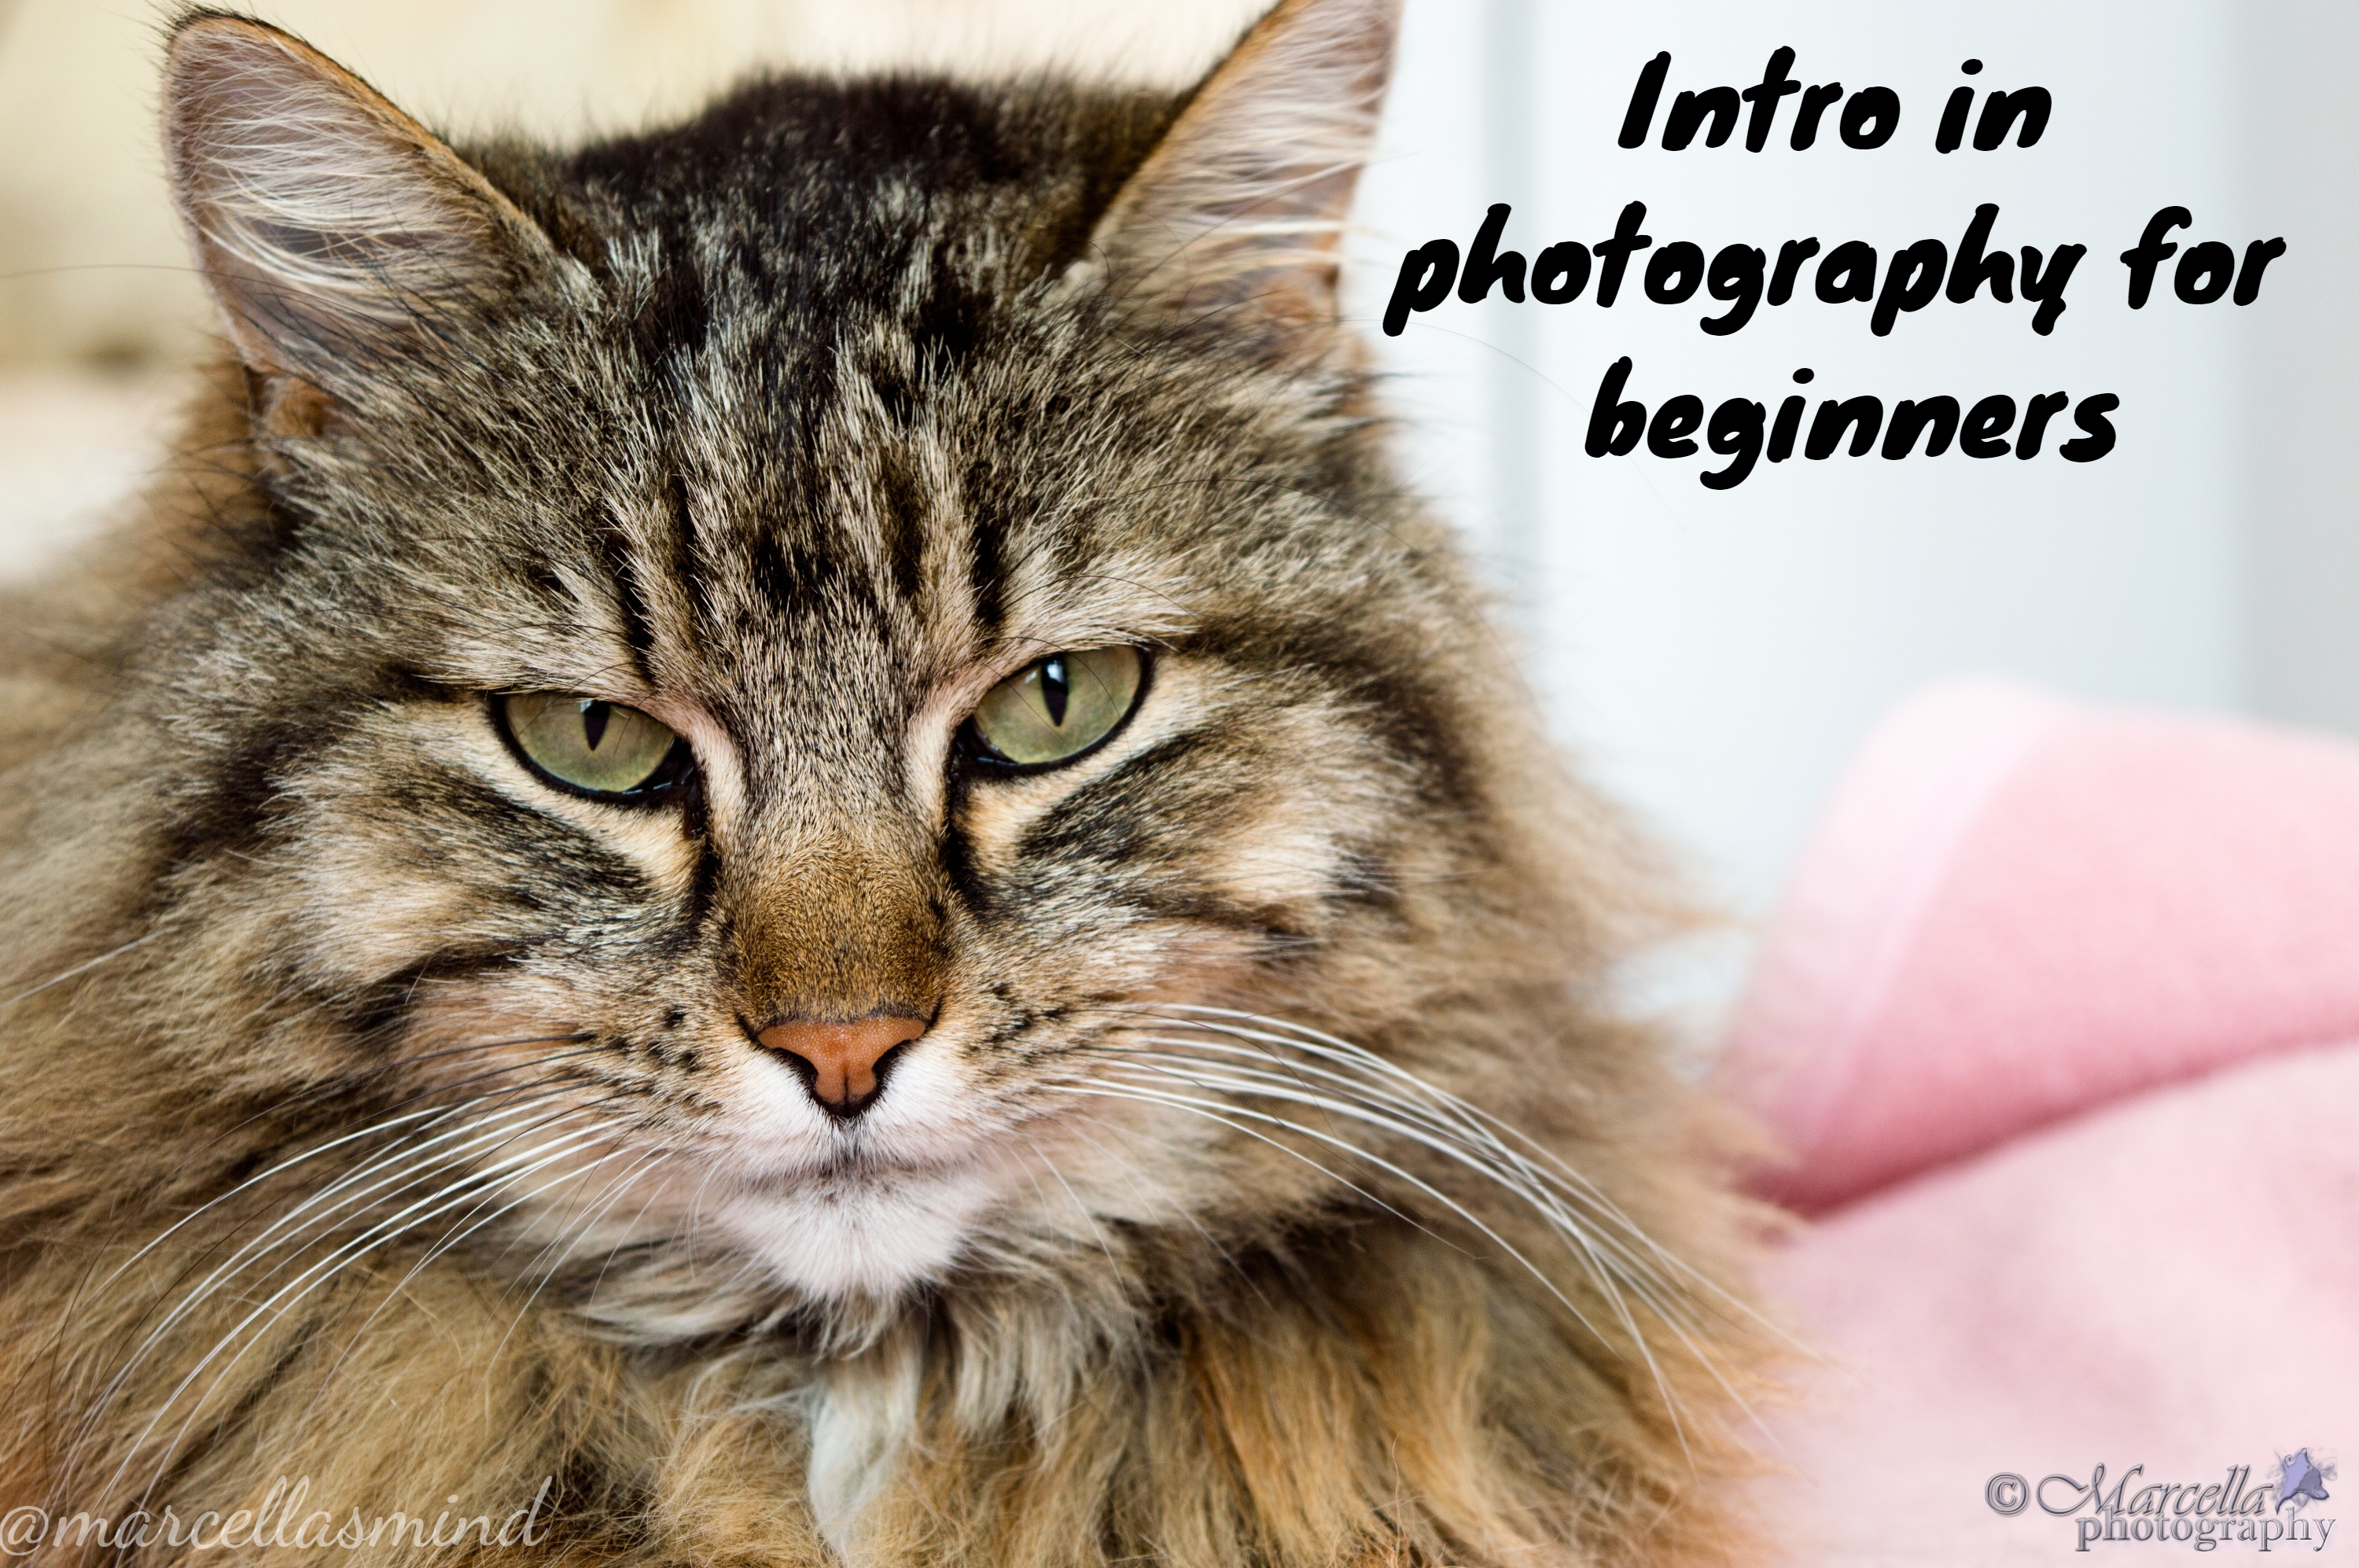 Intro in photography for beginners